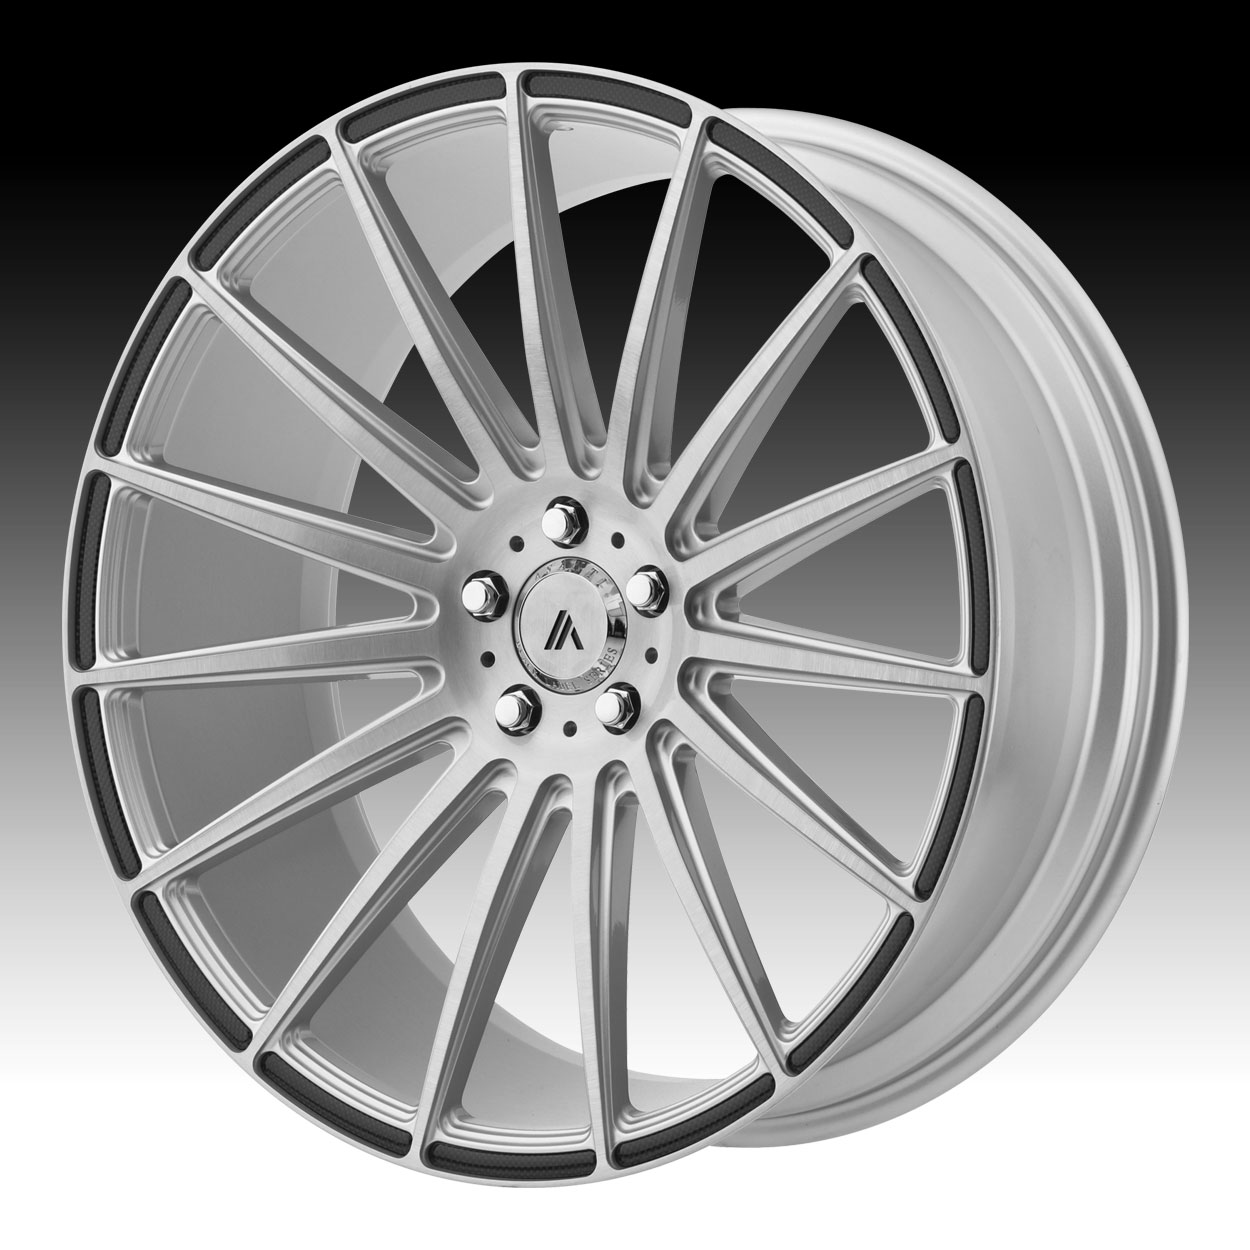 Helo Wheels Helo Wheels And Rims In All Sizes At .html